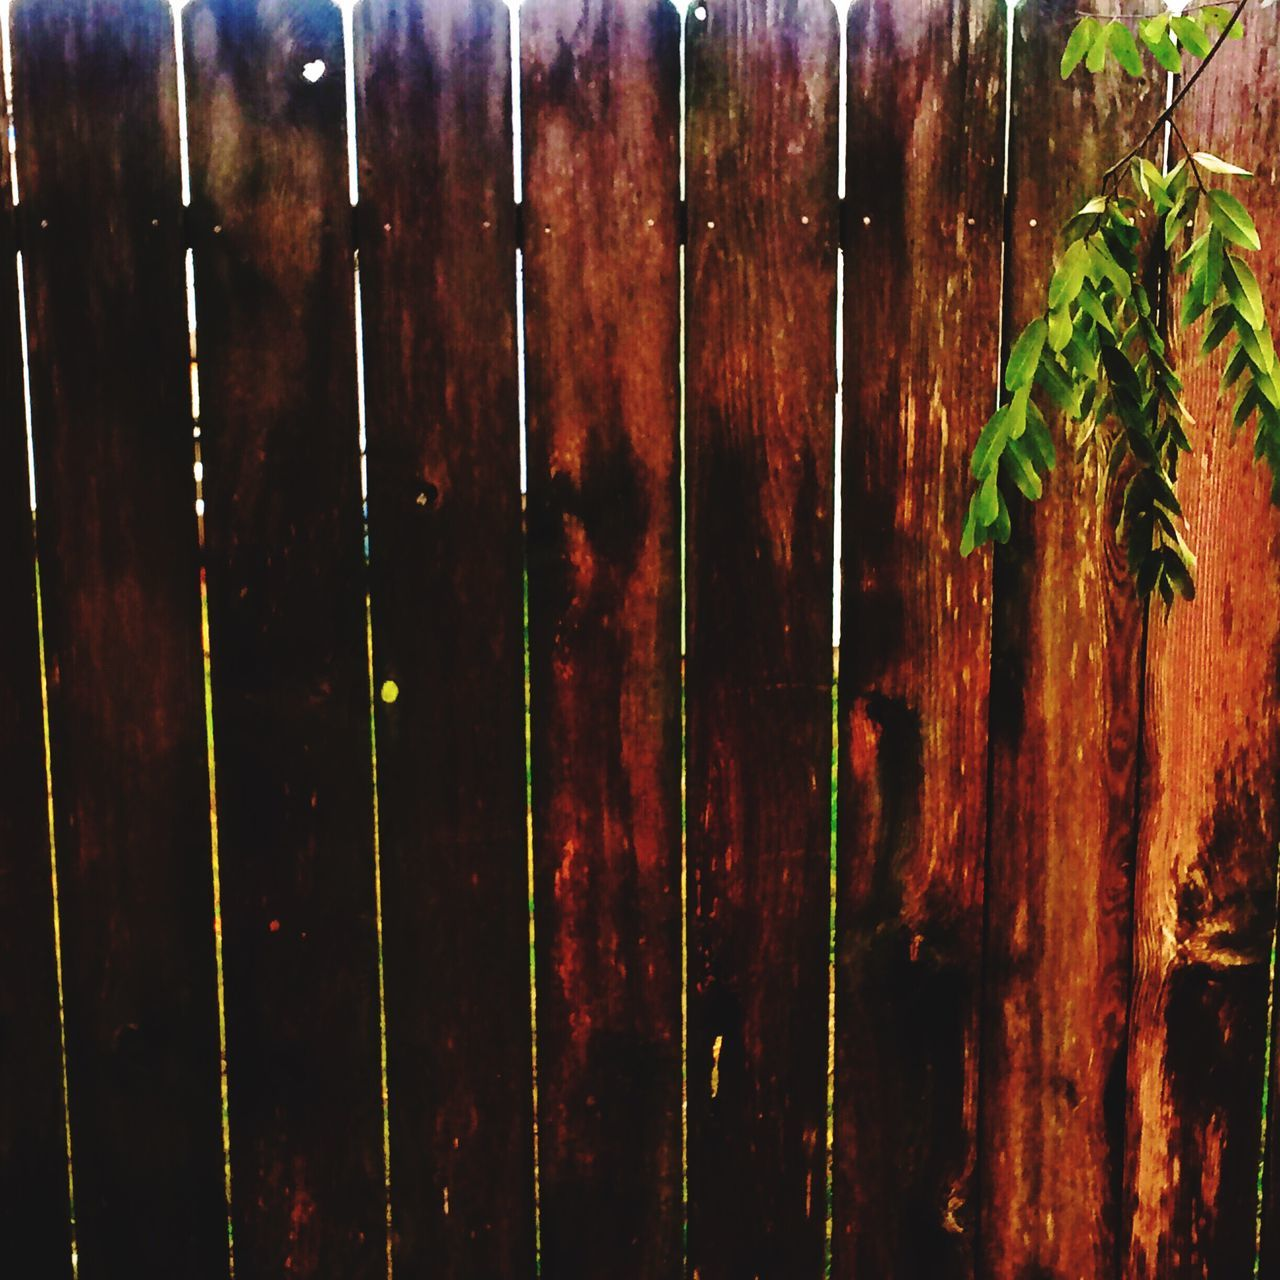 Wood - Material No People Hanging Textured  Close-up Backgrounds Nature Outdoors Day